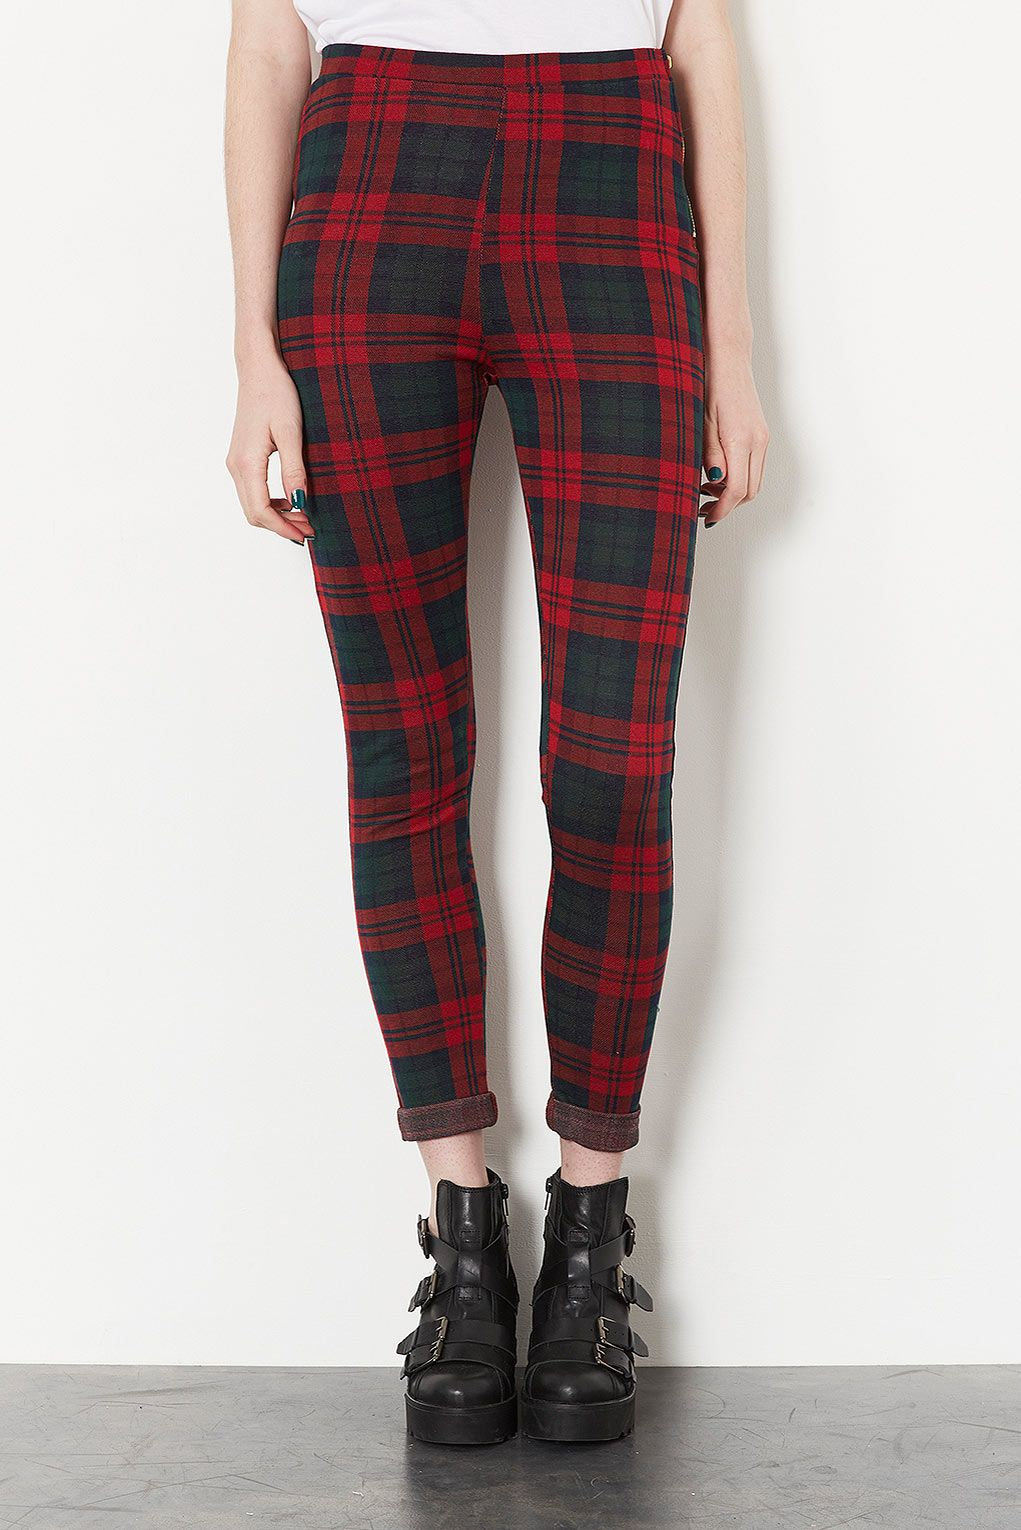 8bbf05cc50478 Topshop tartan trousers- have these, so comfortable | Topshop ...